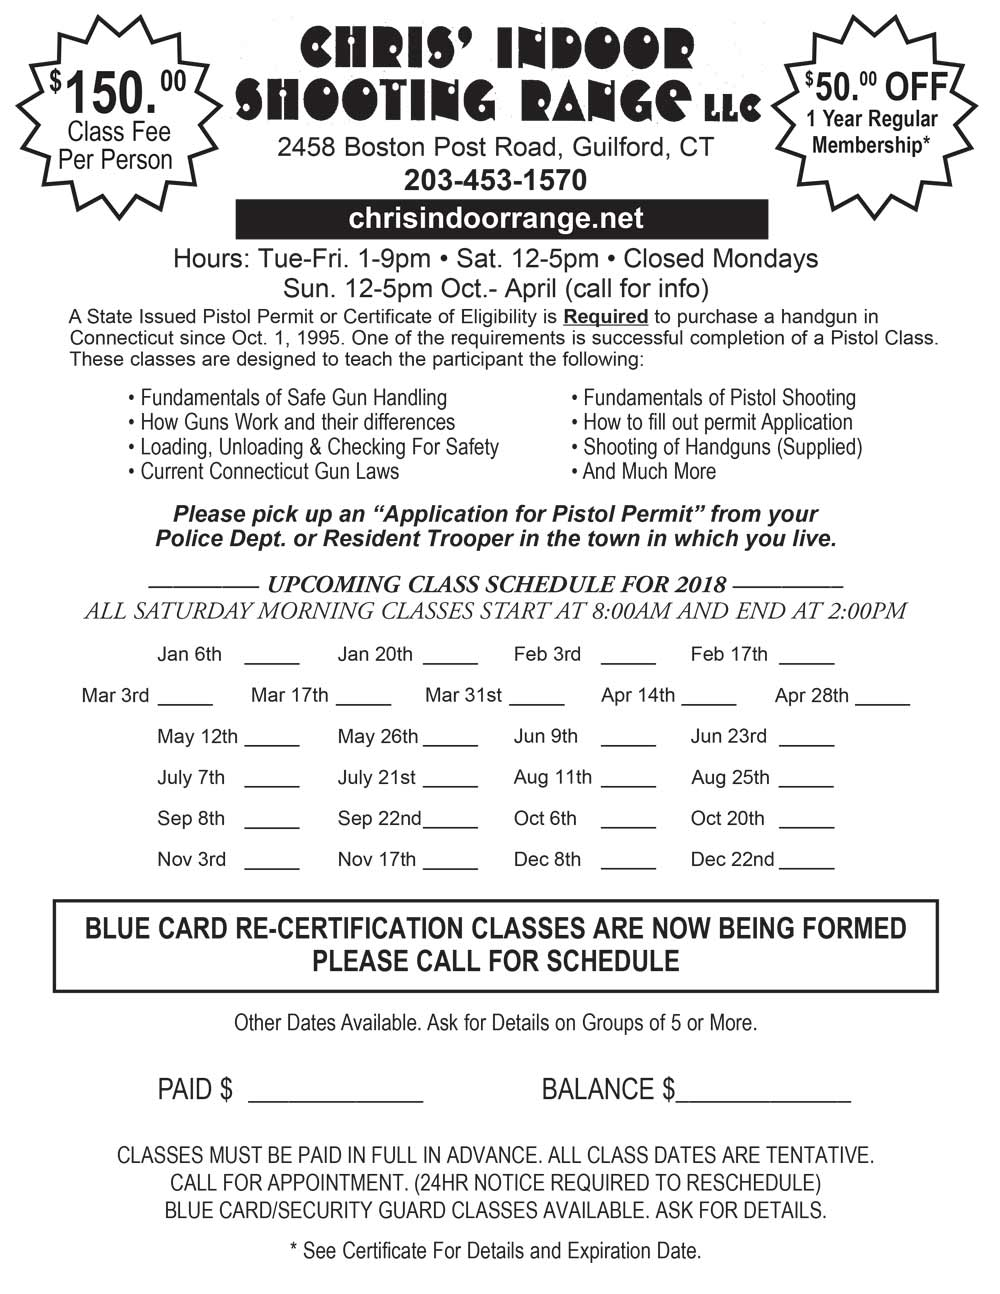 Pistol Permit Classes in guilford ct